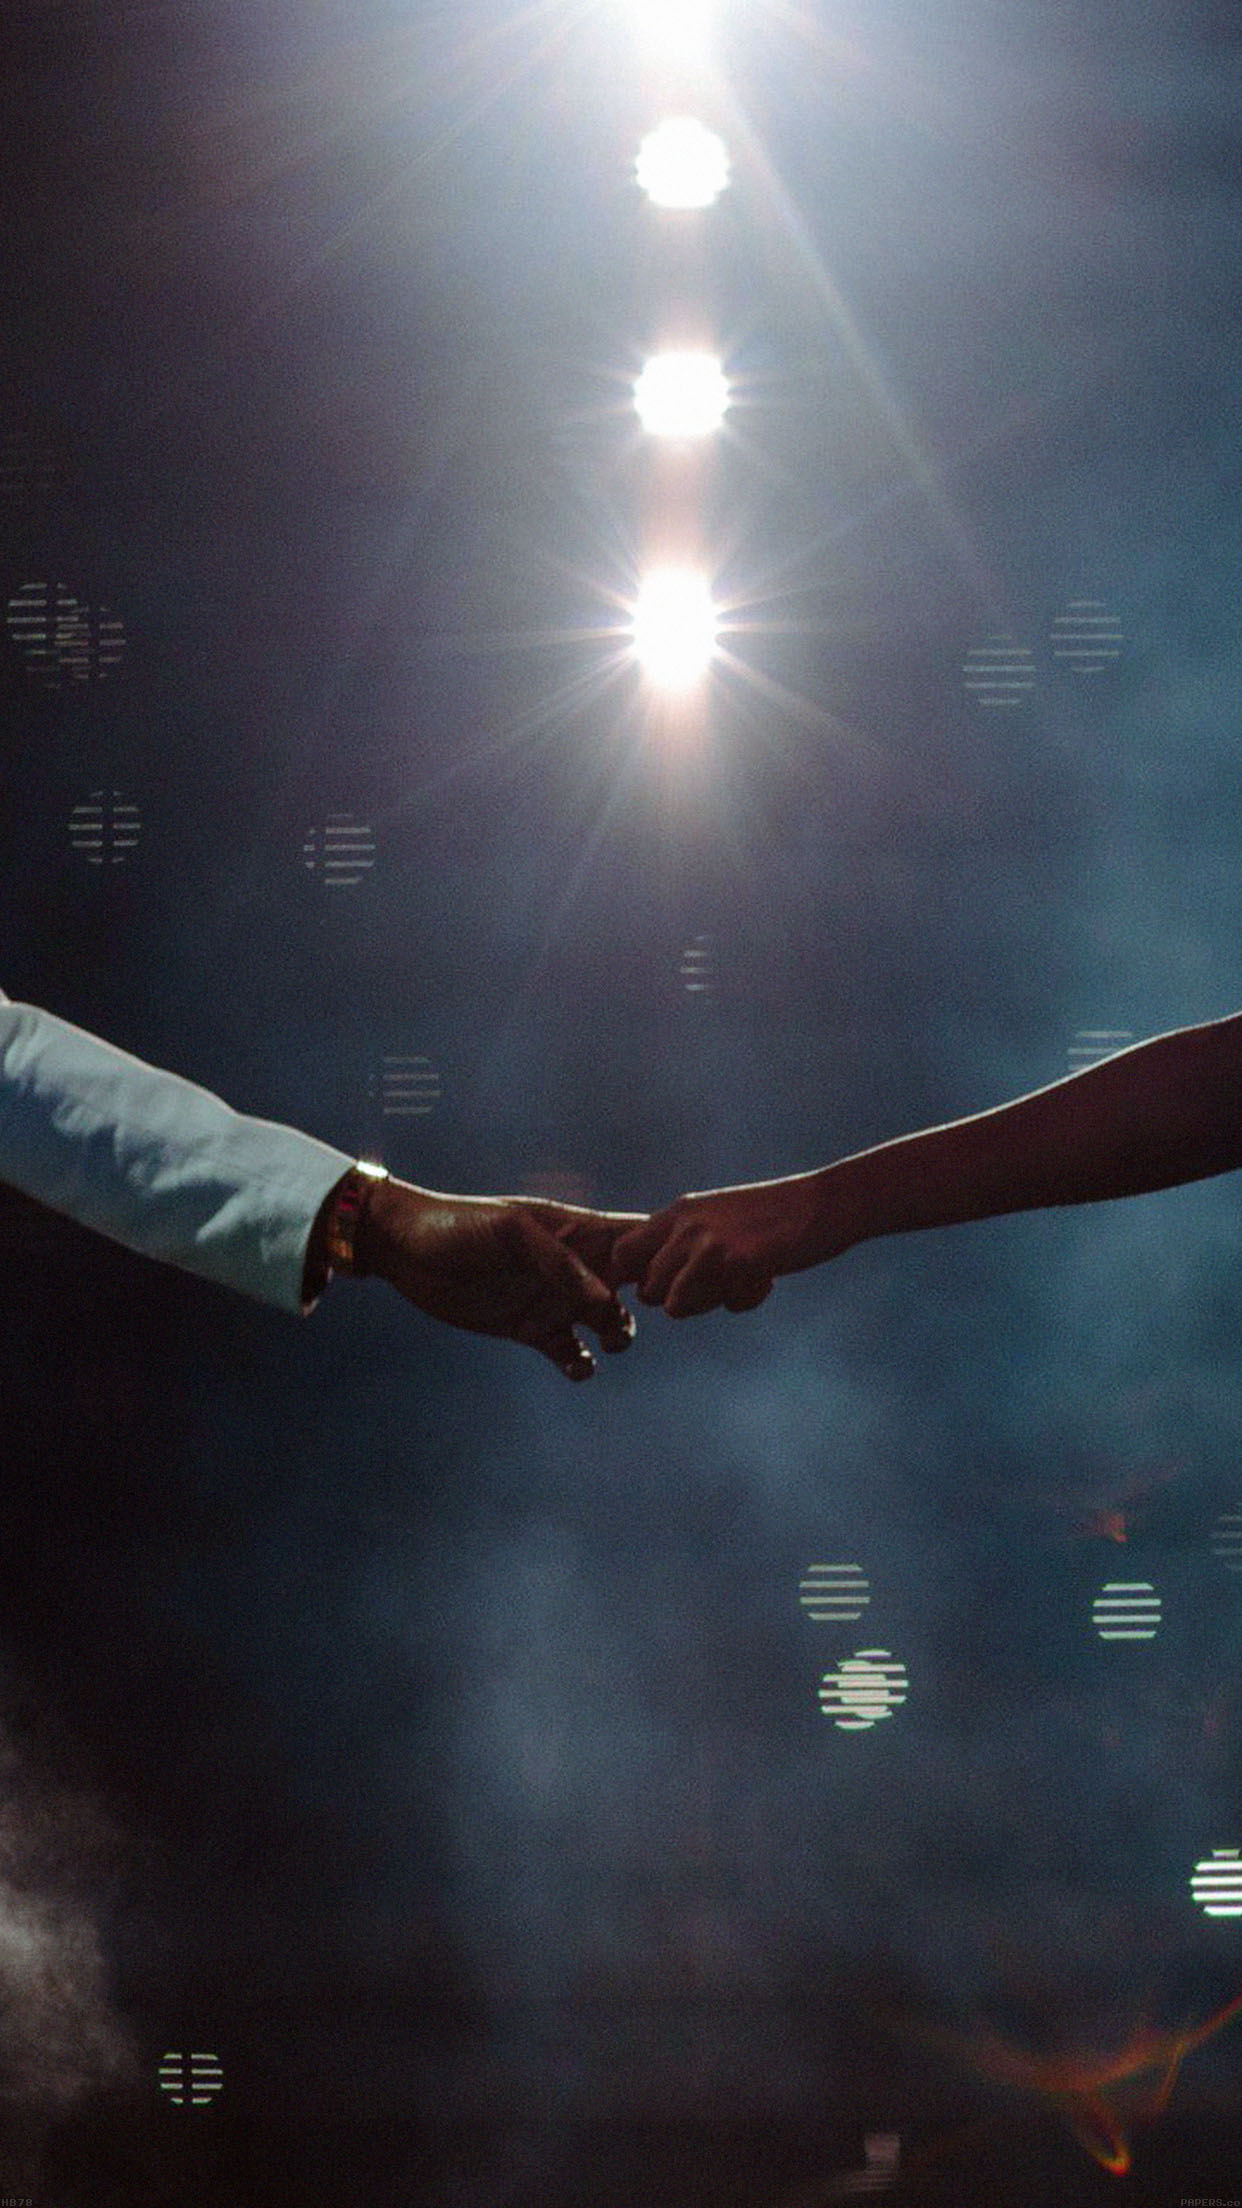 Hb78 jay z and beyonce love iphone plus malvernweather Image collections